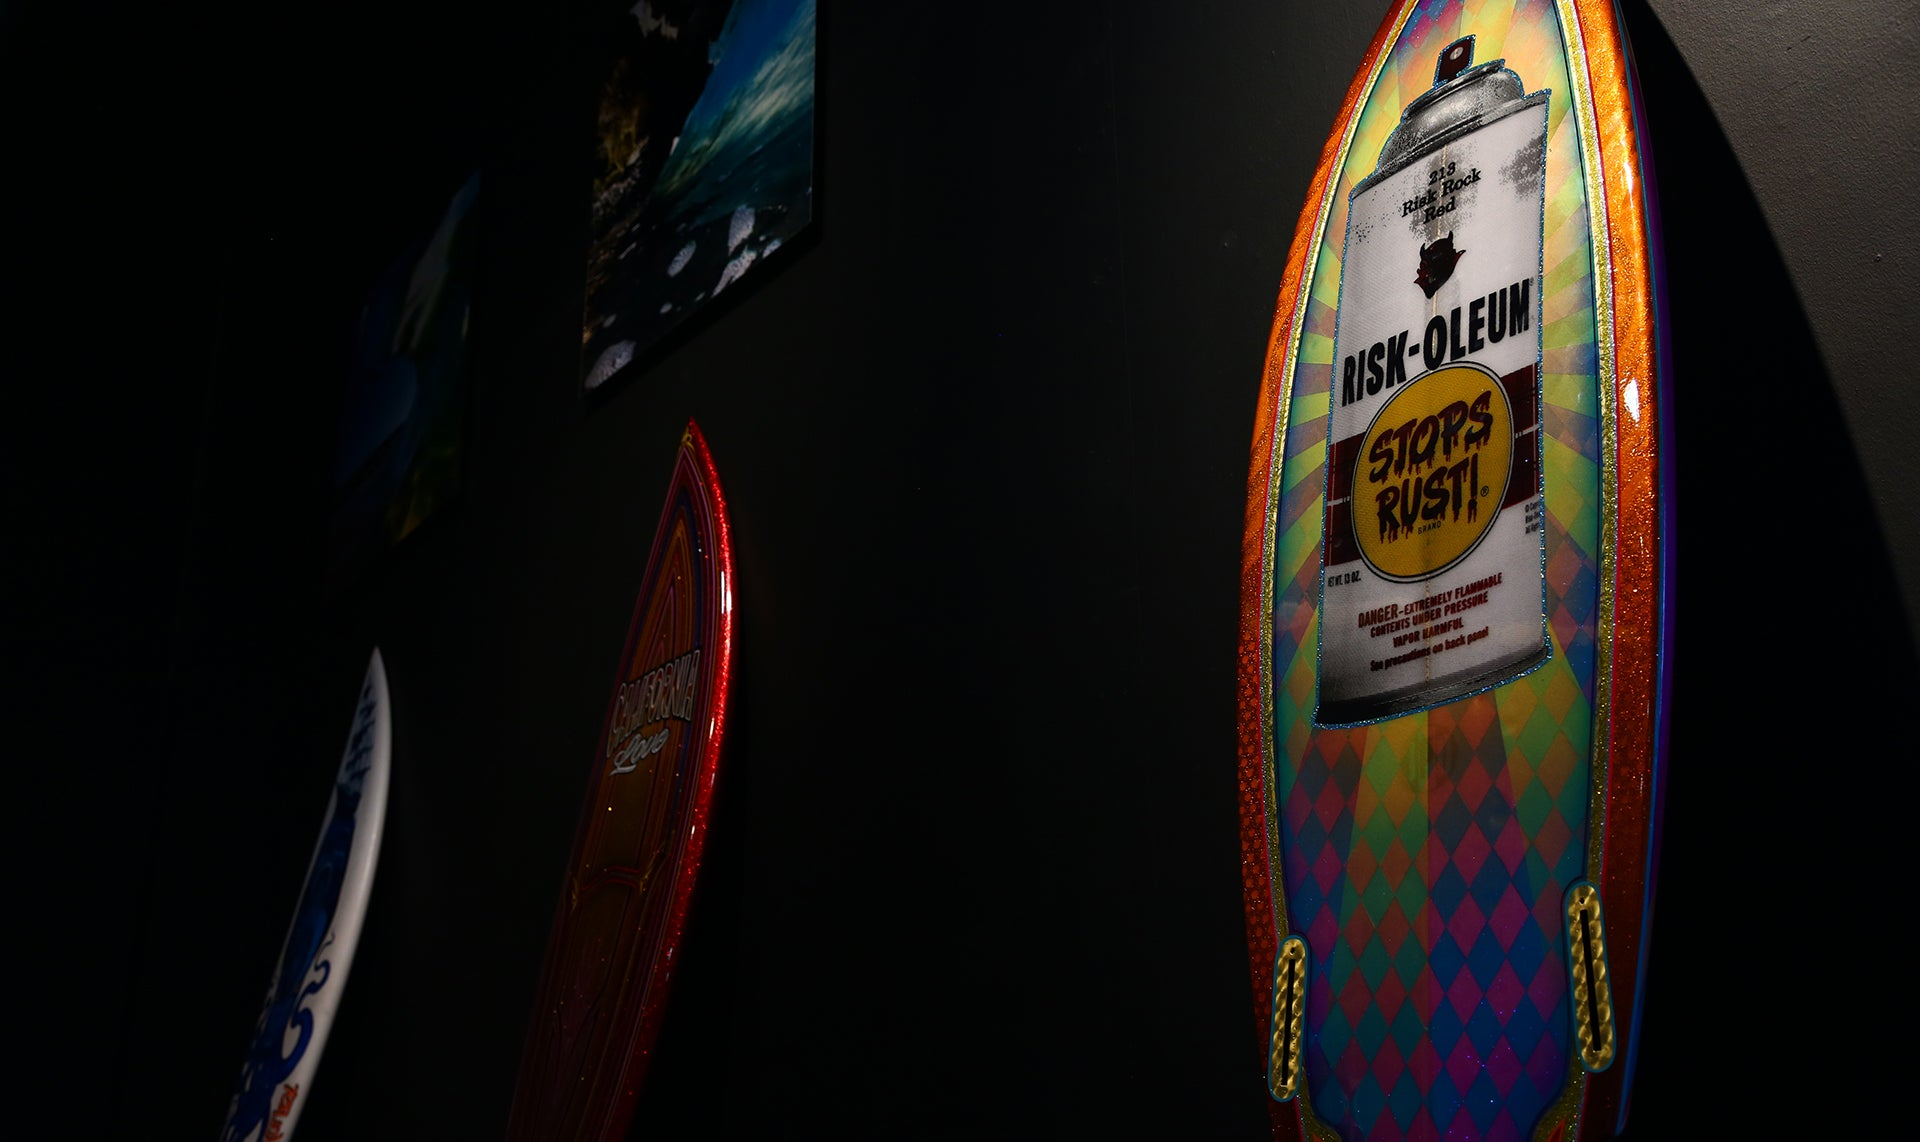 Custom Surfboard at Legacy Carshow